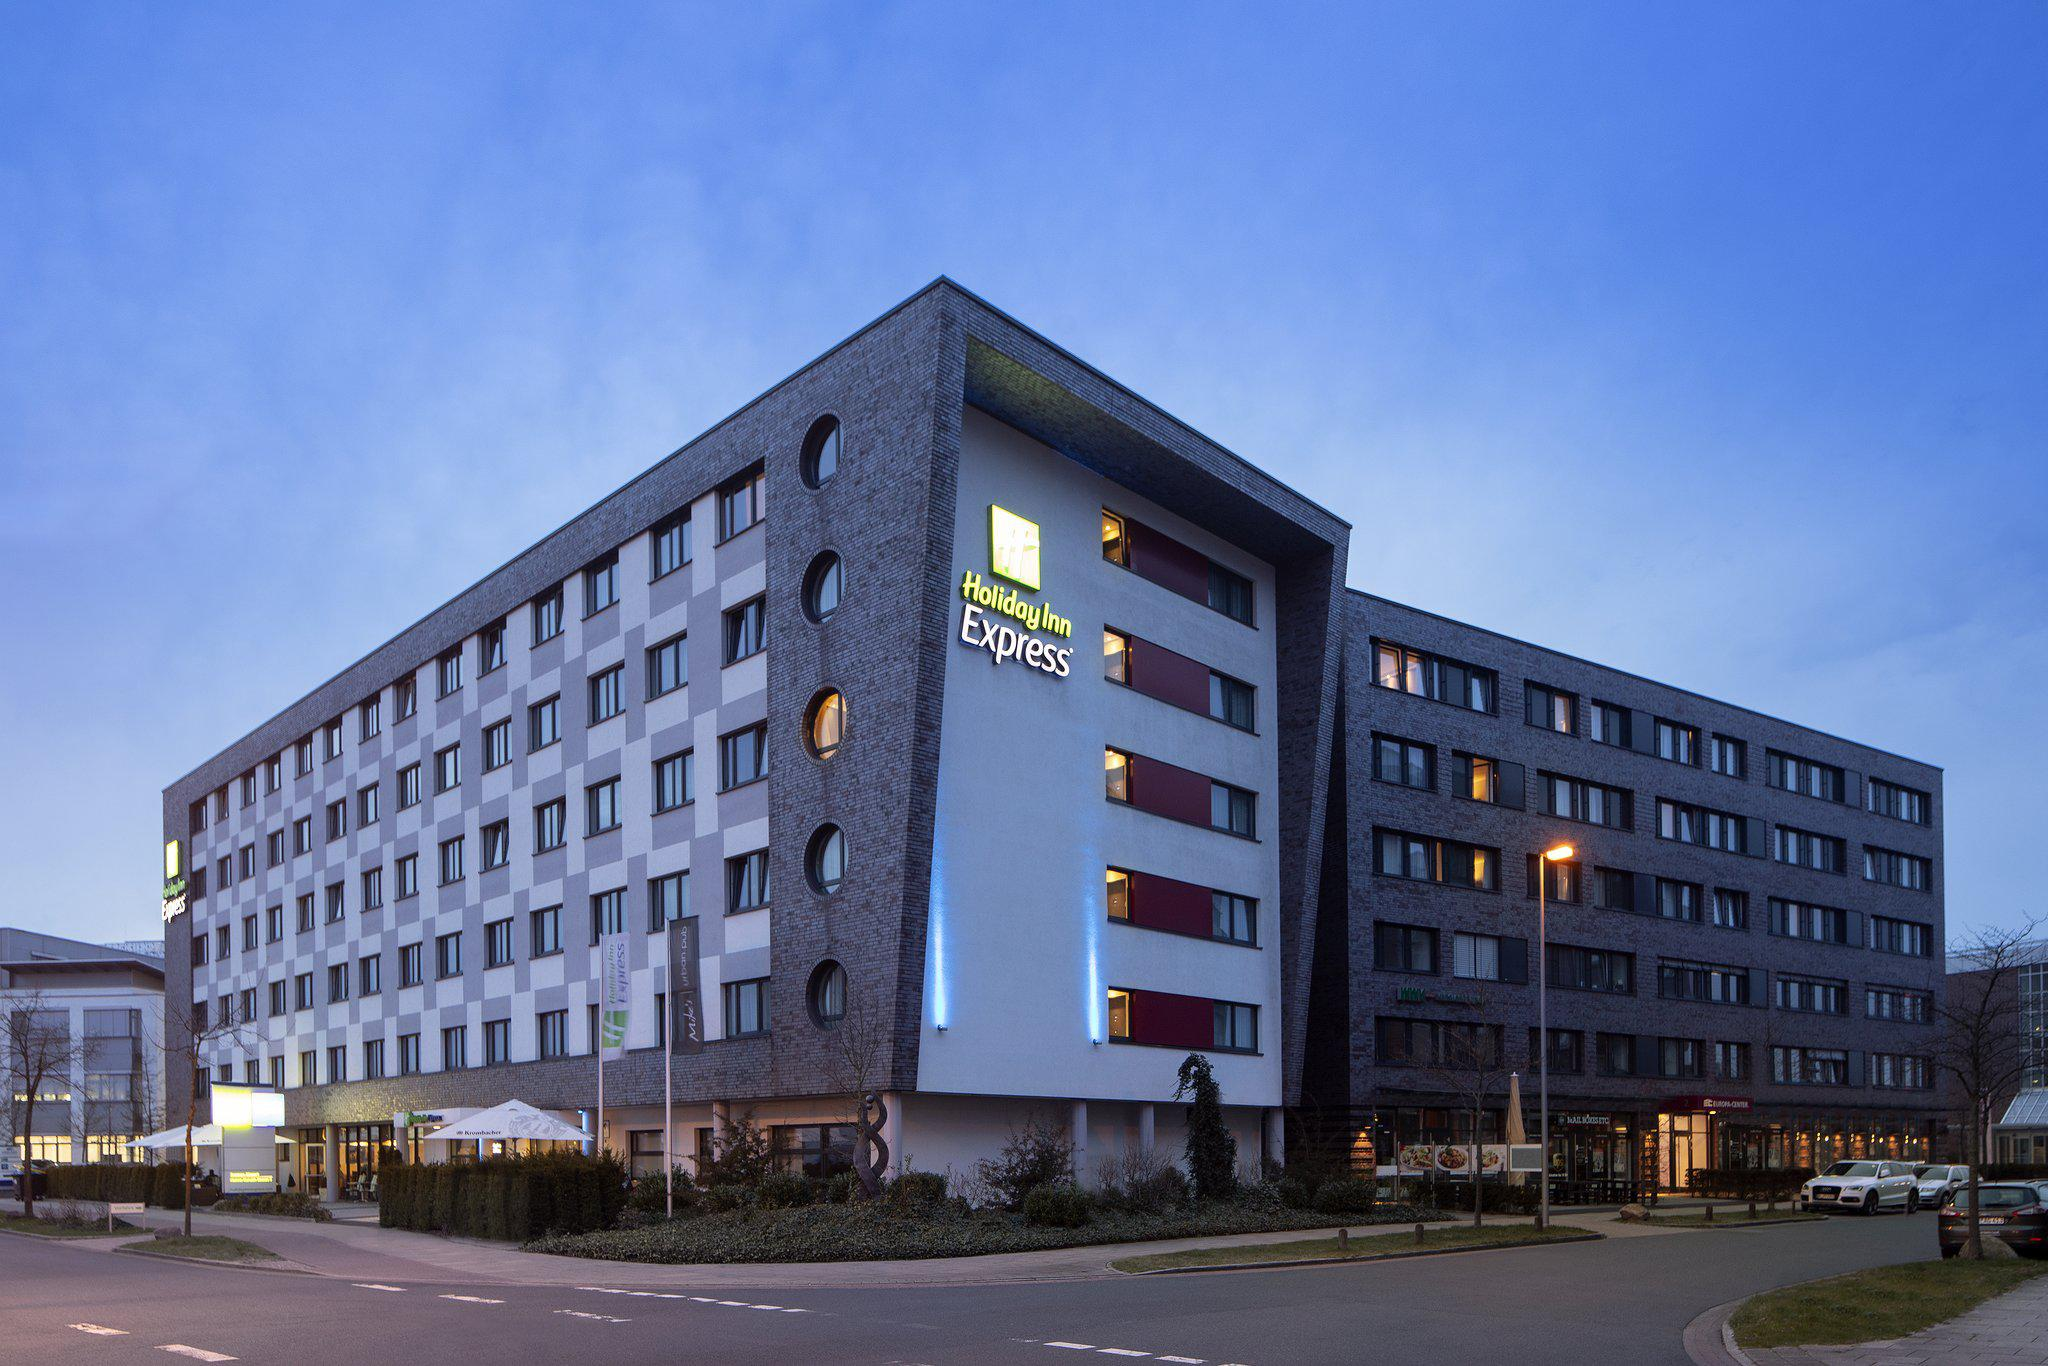 Holiday Inn Express Bremen Airport, Hanna-Kunath-Strasse 5 in Bremen